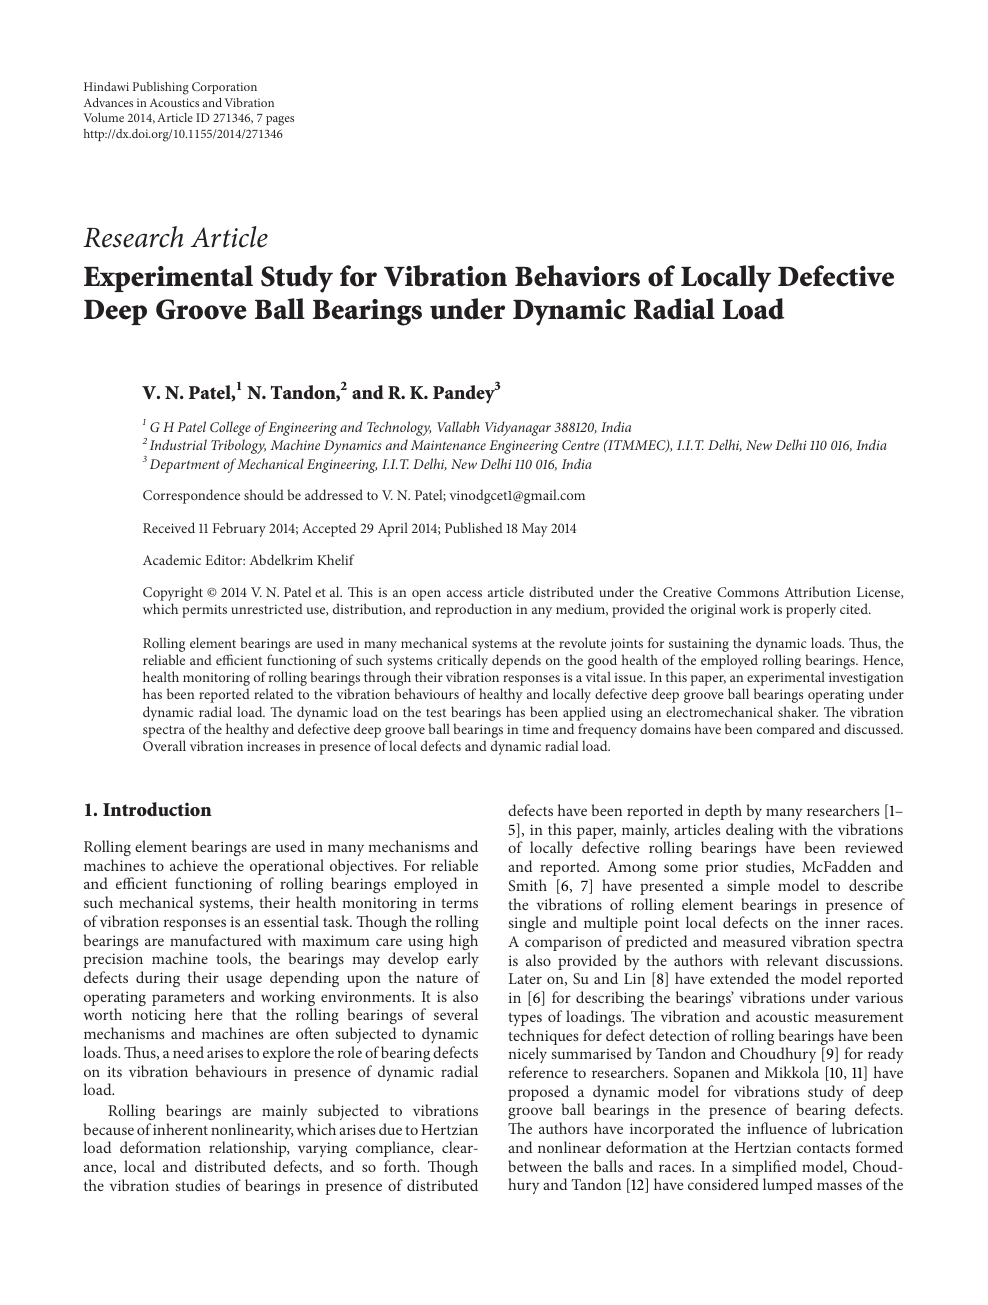 Experimental Study for Vibration Behaviors of Locally